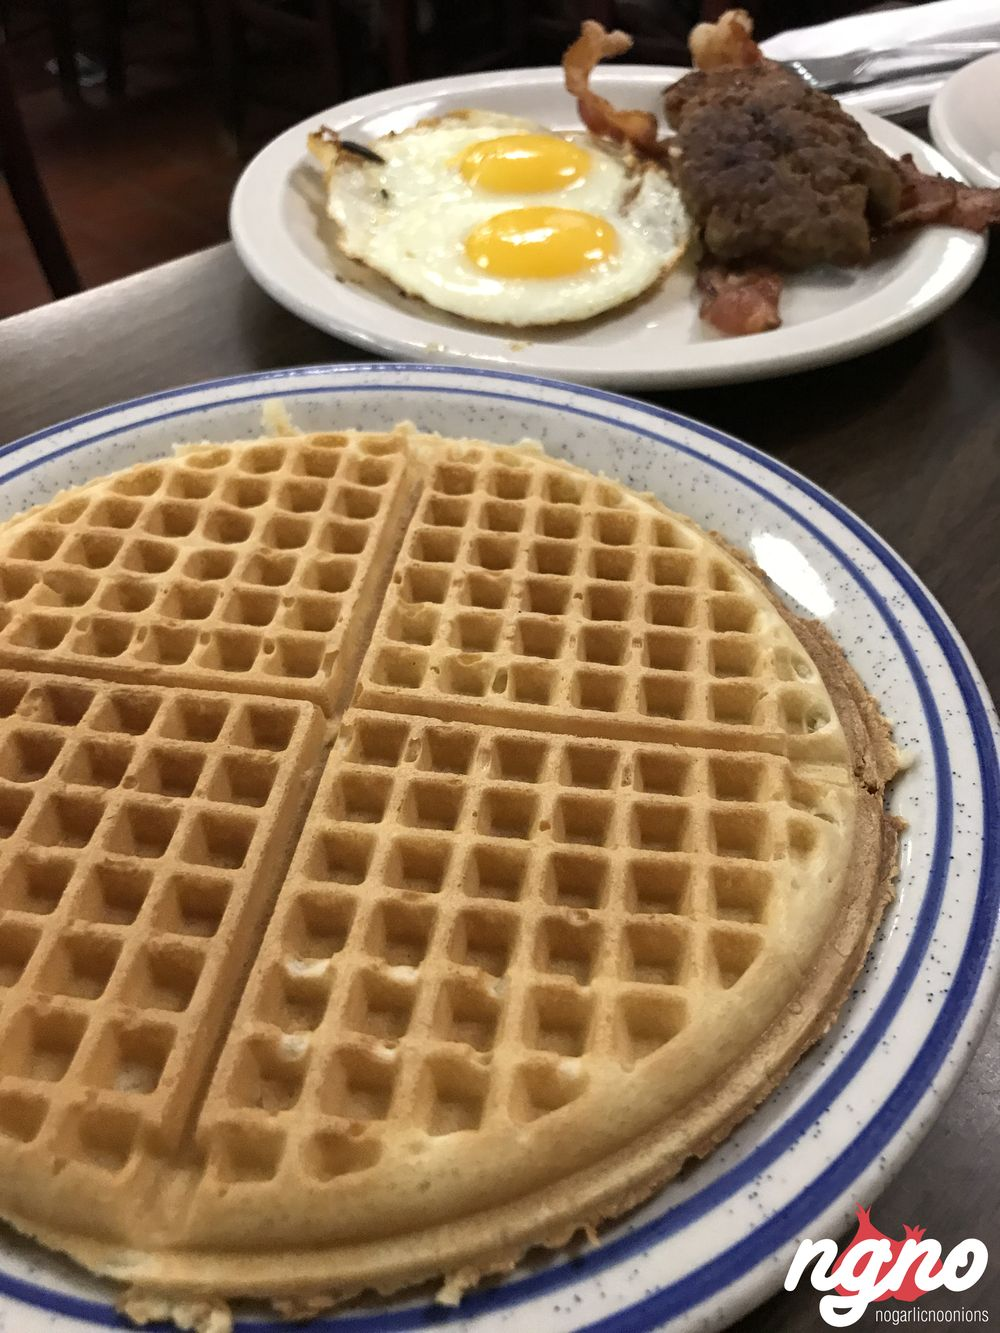 kennedy-waffle-shop-washington72017-04-24-12-38-40